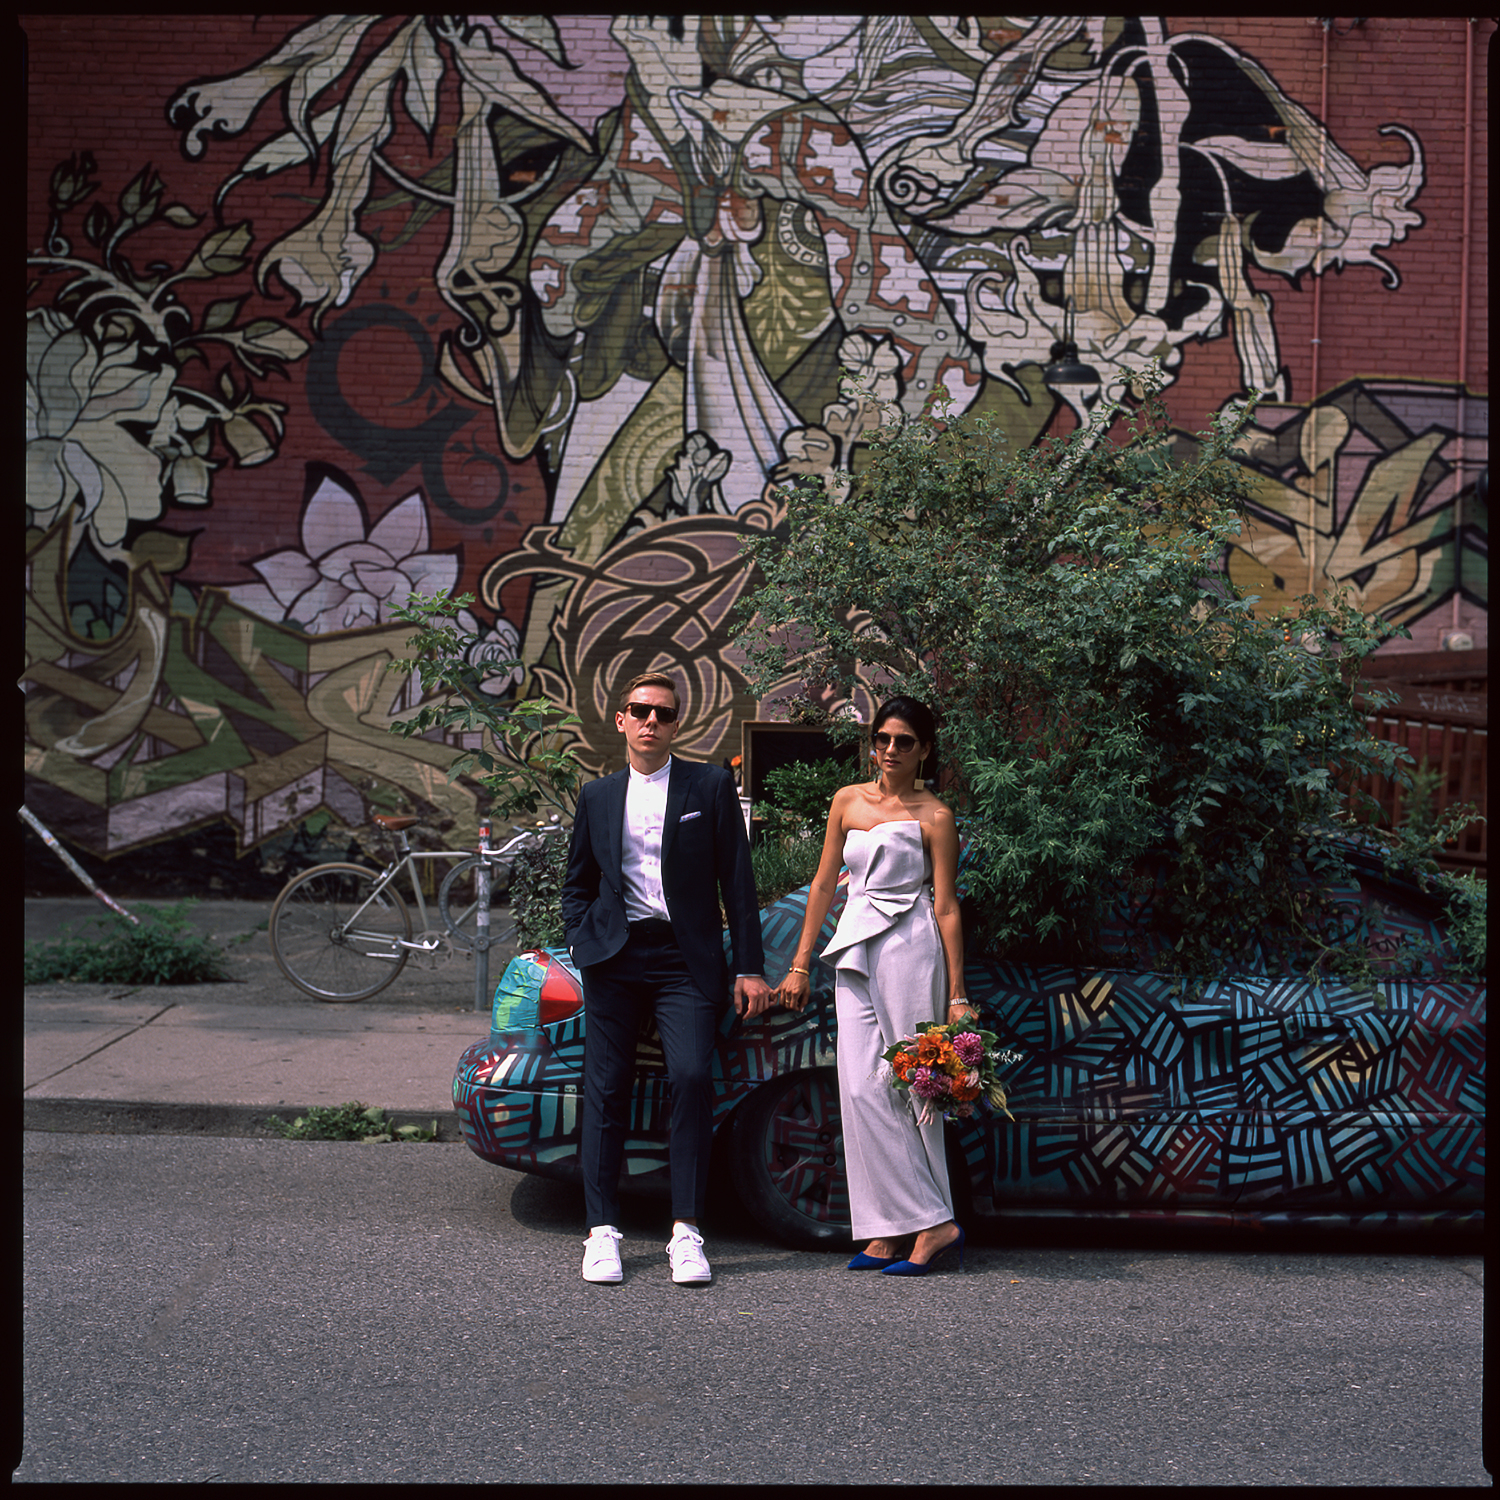 Best-Documentary-Wedding-Photographers-Toronto-Analog-Film-Photographer-Downtown-Kensington-Market-City-Bride-Bridal-Jumpsuit-Style.jpg